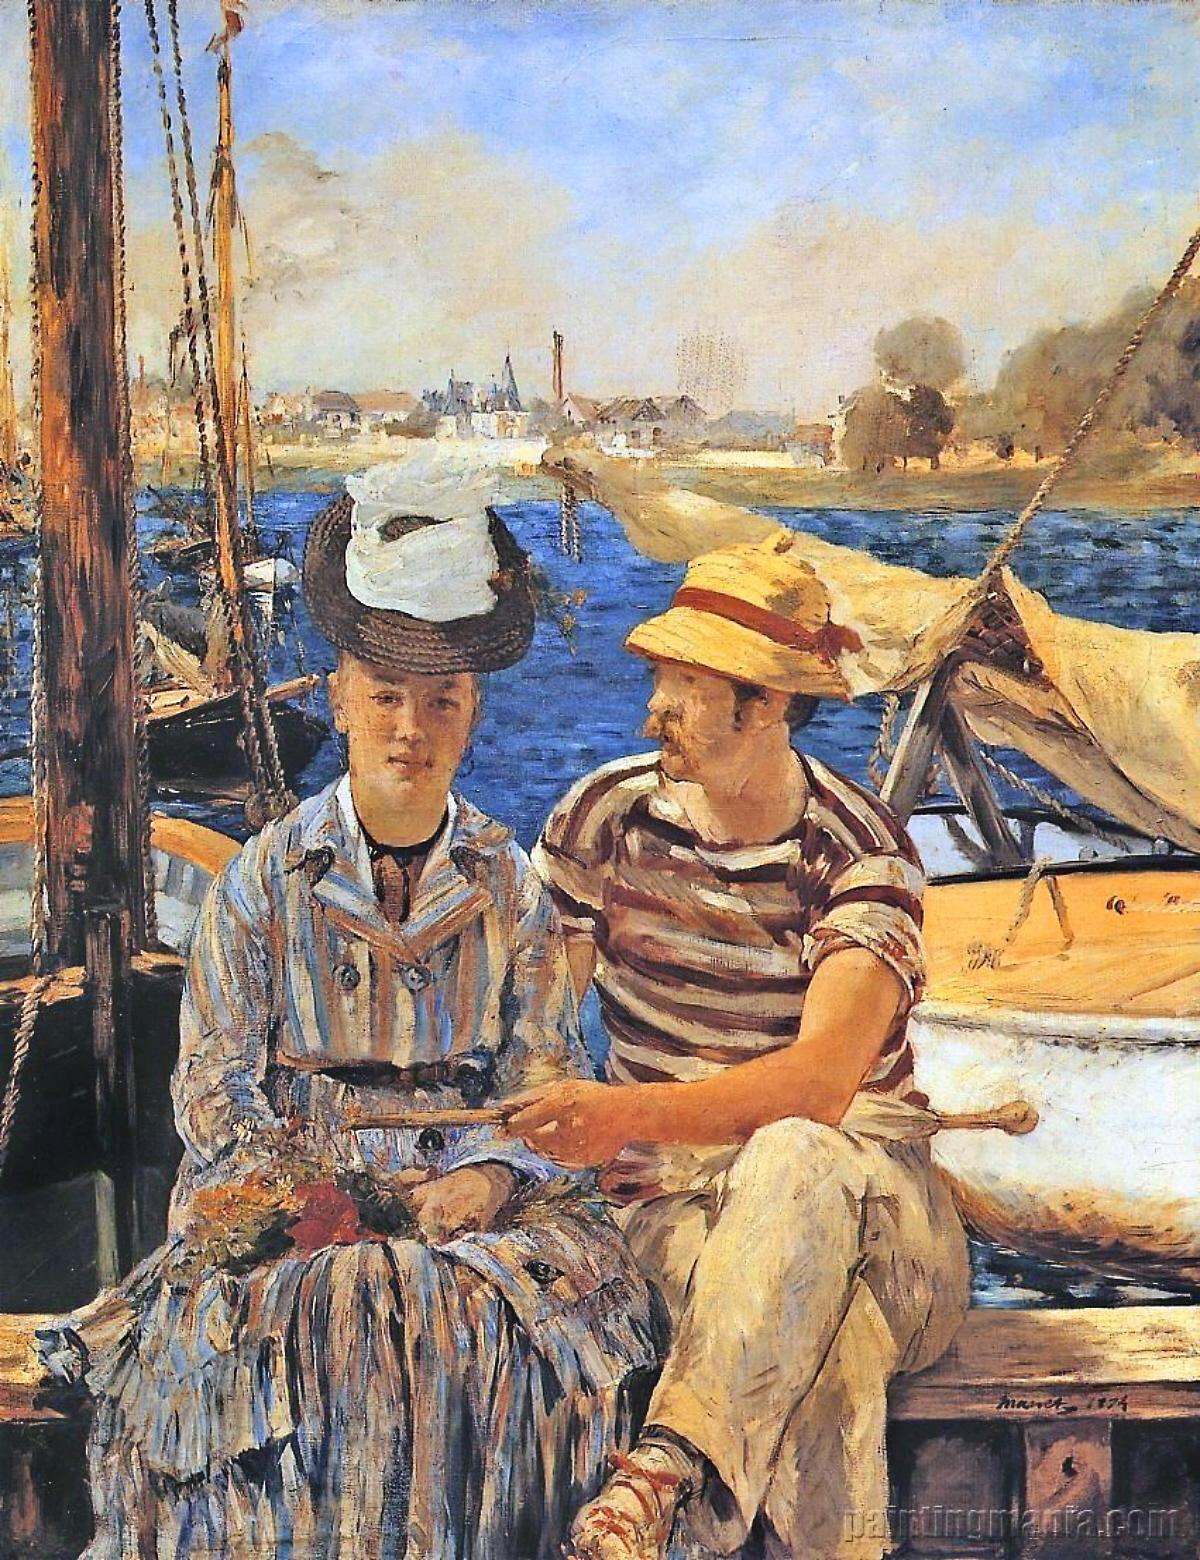 https://03varvara.files.wordpress.com/2011/06/c3a9douard-manet-argenteuil-1874.jpg